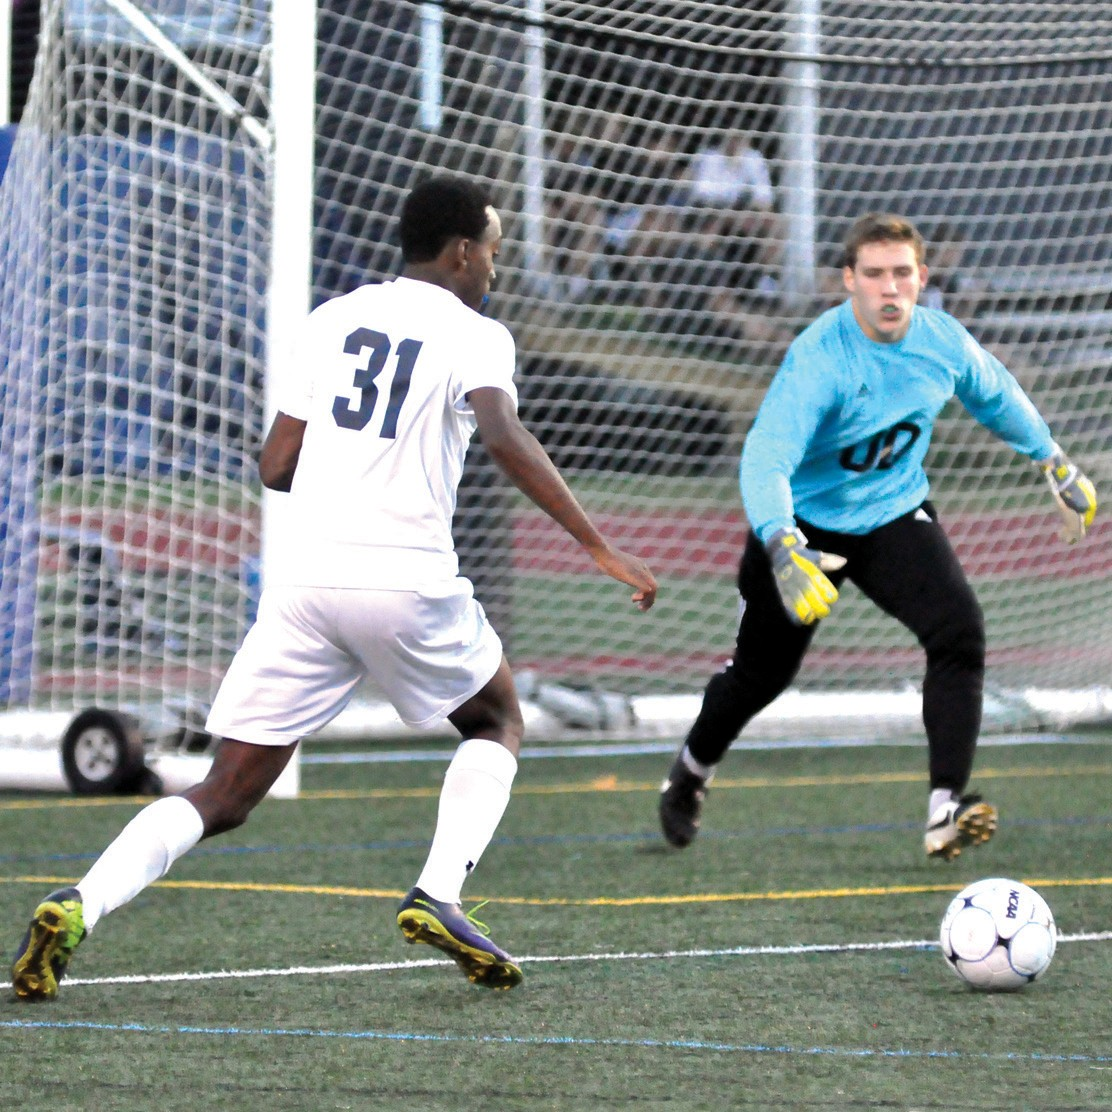 Yarmouth's Tahj Garvey (31) looks to take a shot against Kennebunk goalie Sean Berry during an 8- 0 Clippers' victory in Yarmouth Monday.